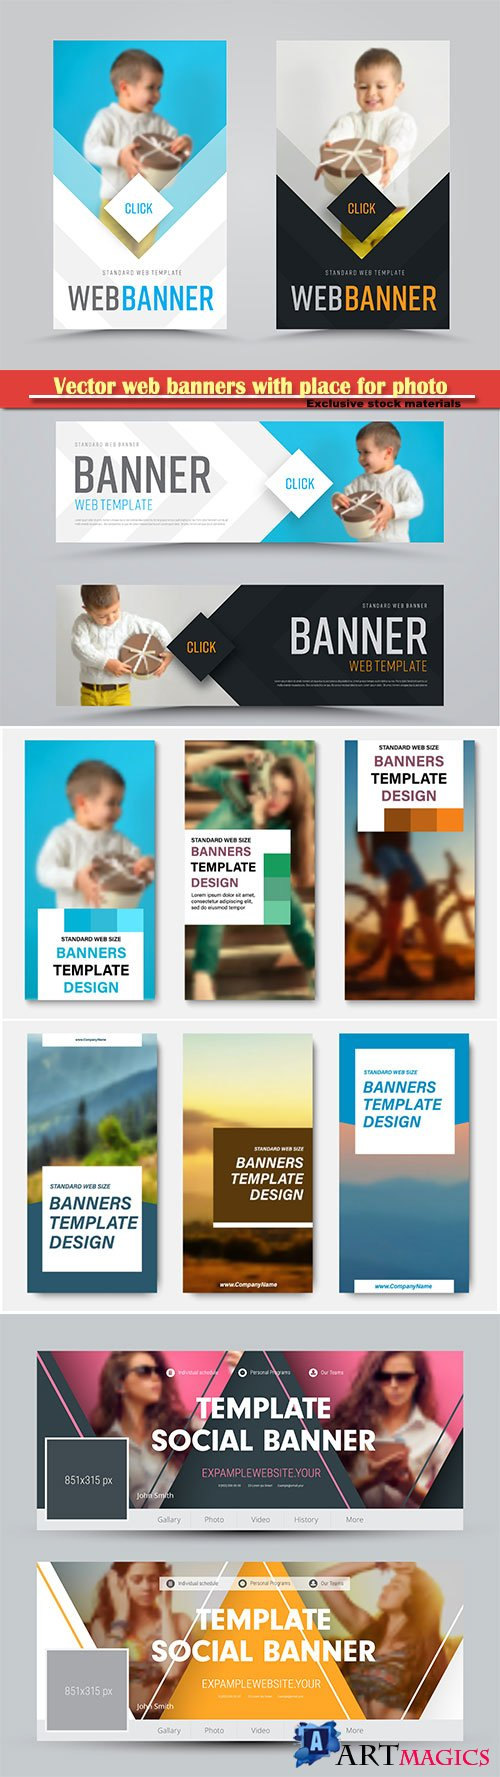 Vector web banners with place for photo and squares for the header